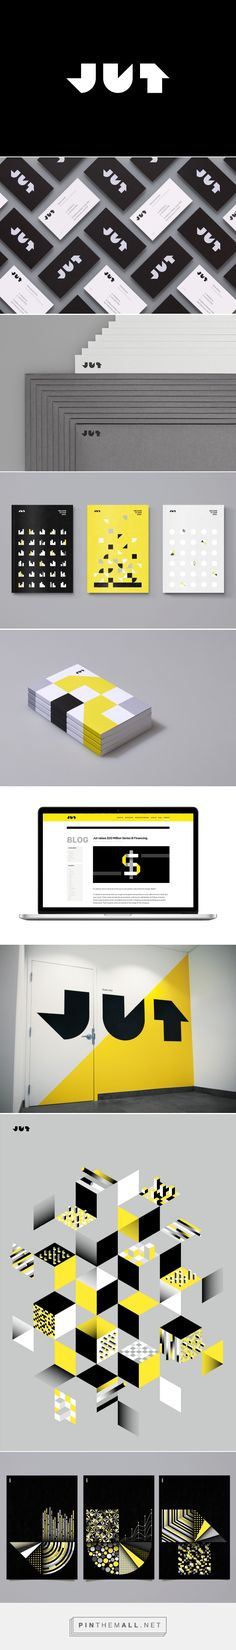 Jut Branding by Moniker | Fivestar Branding – Design and Branding Agency & Inspiration Gallery